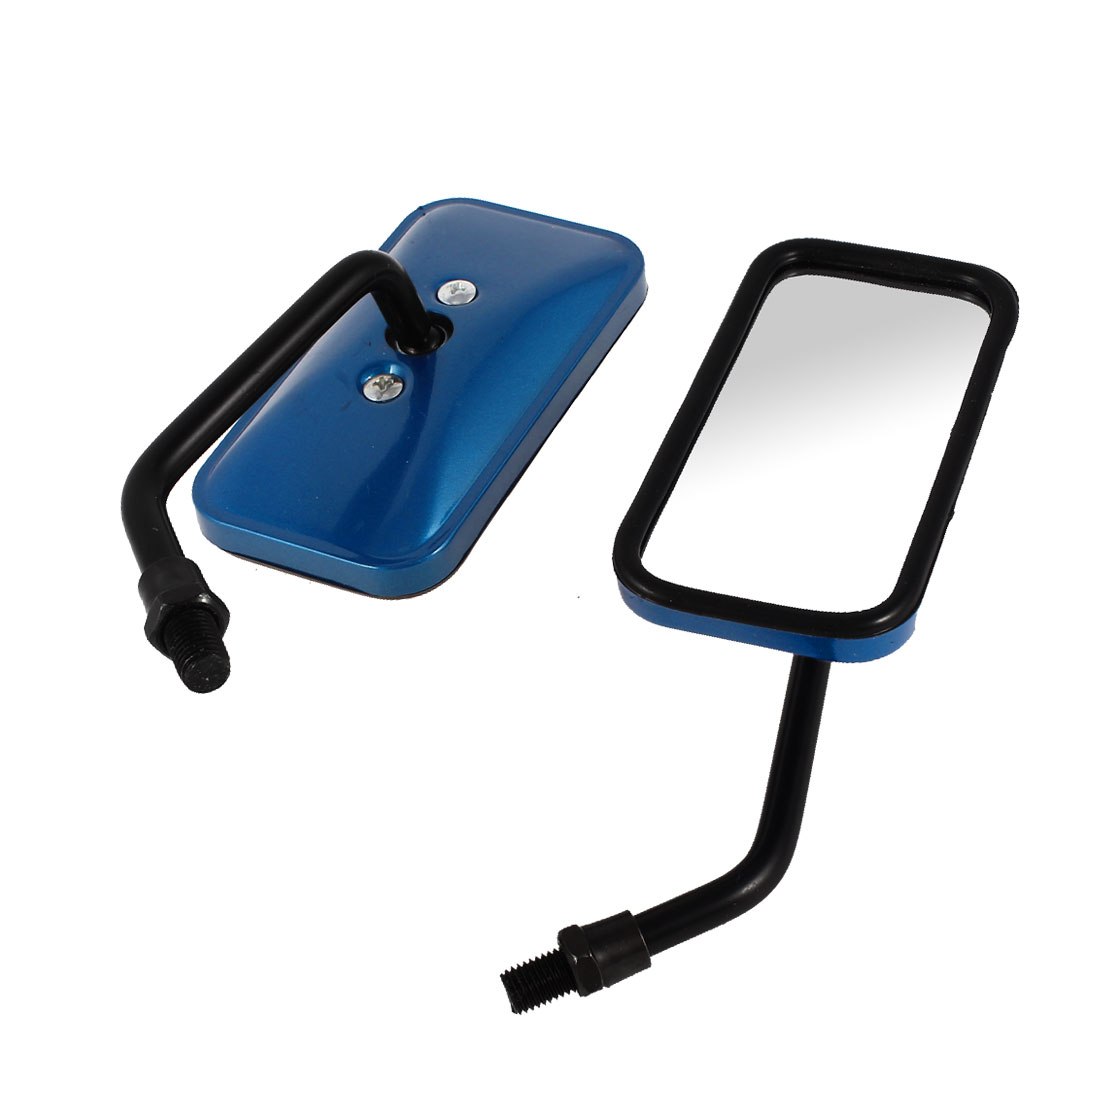 2 Pcs Blue Plastic Casing Rectangle Motorcycle Side Rearview Blind Spot Mirror